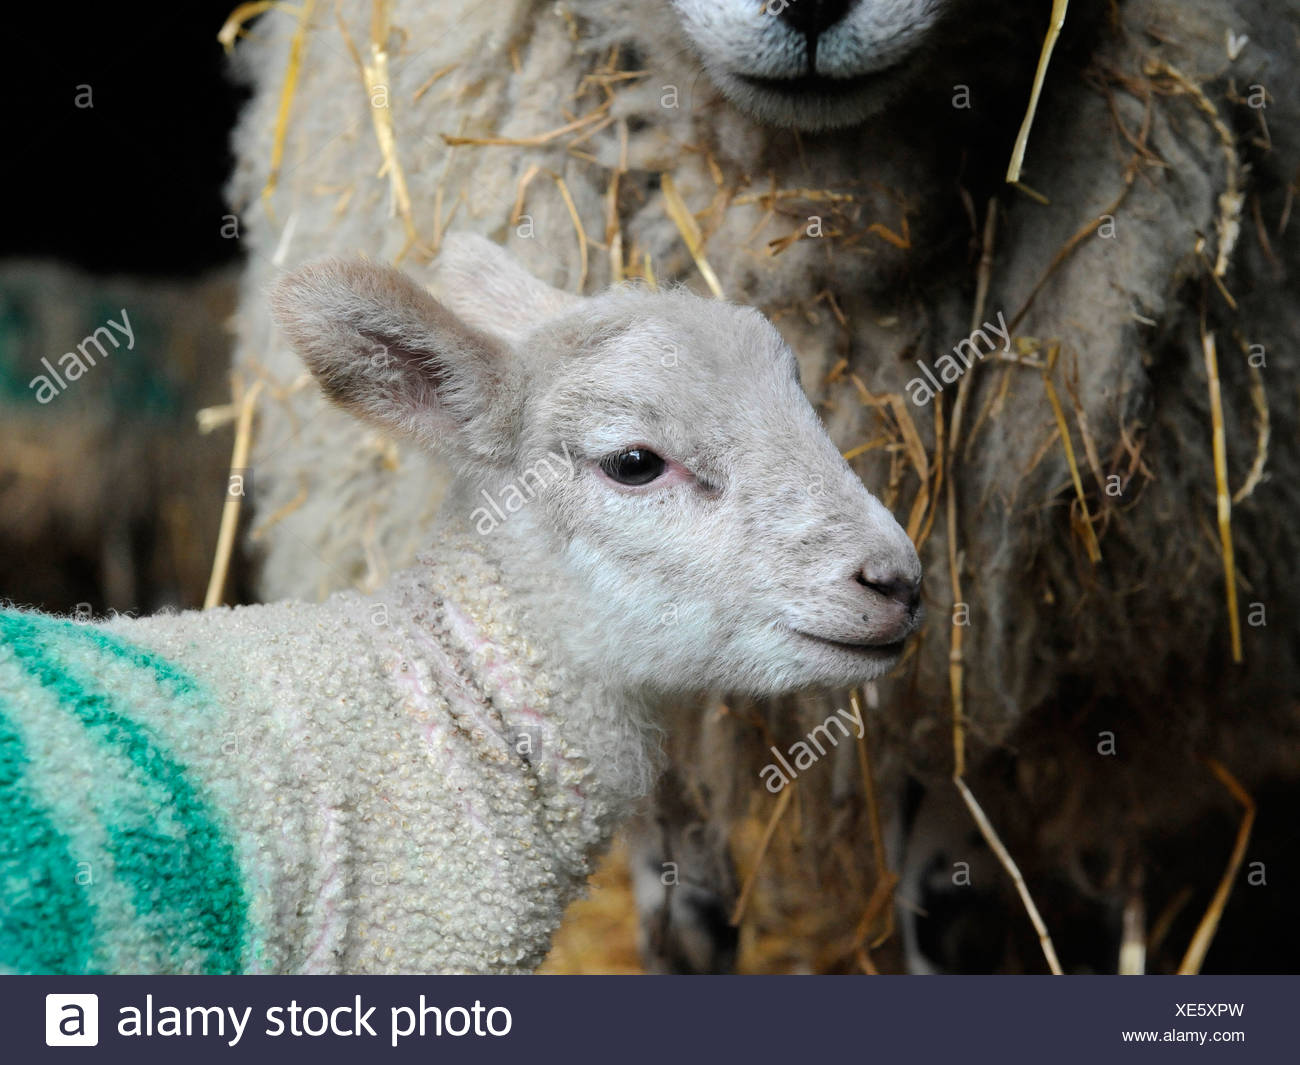 A small young lamb with its mother Stock Photo